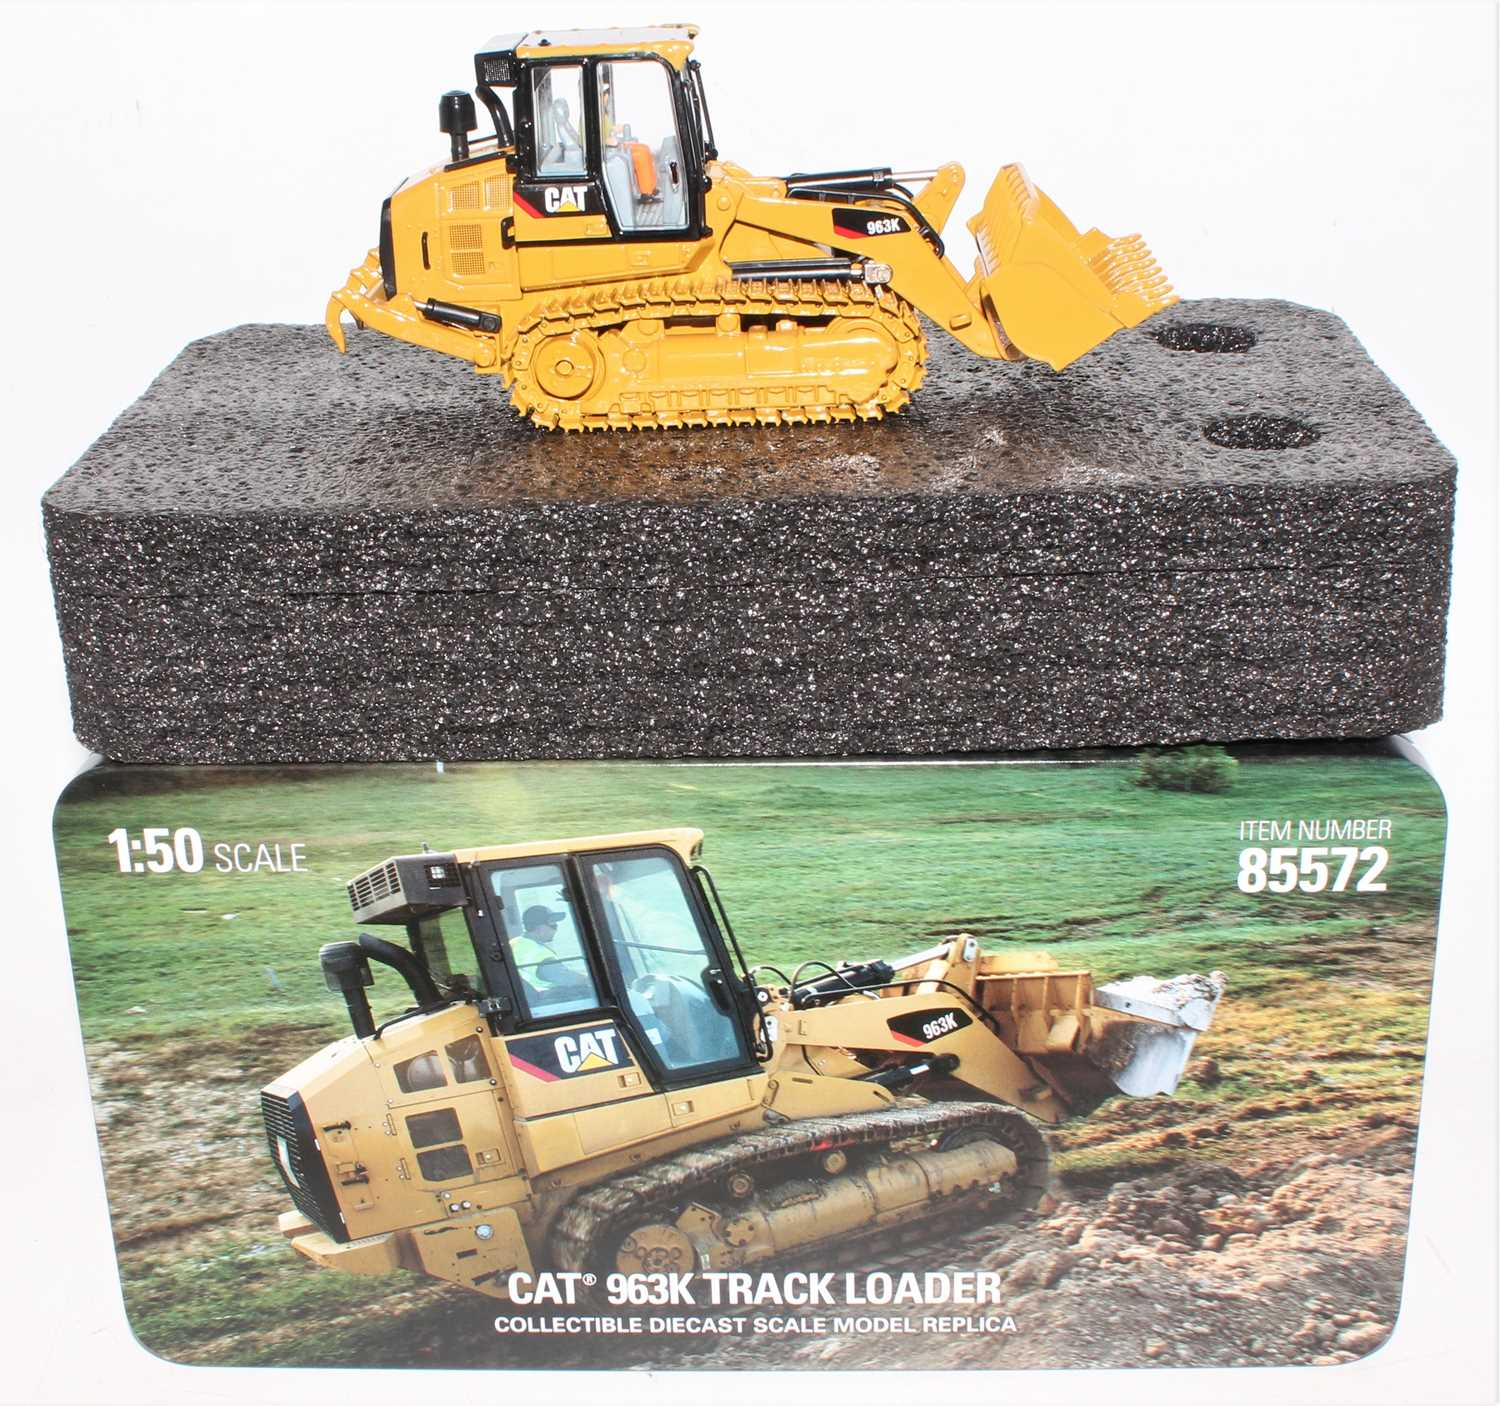 A diecast Masters Real Replicas Highline series Model No. 85572 1/50 scale model of a Caterpillar - Image 2 of 2